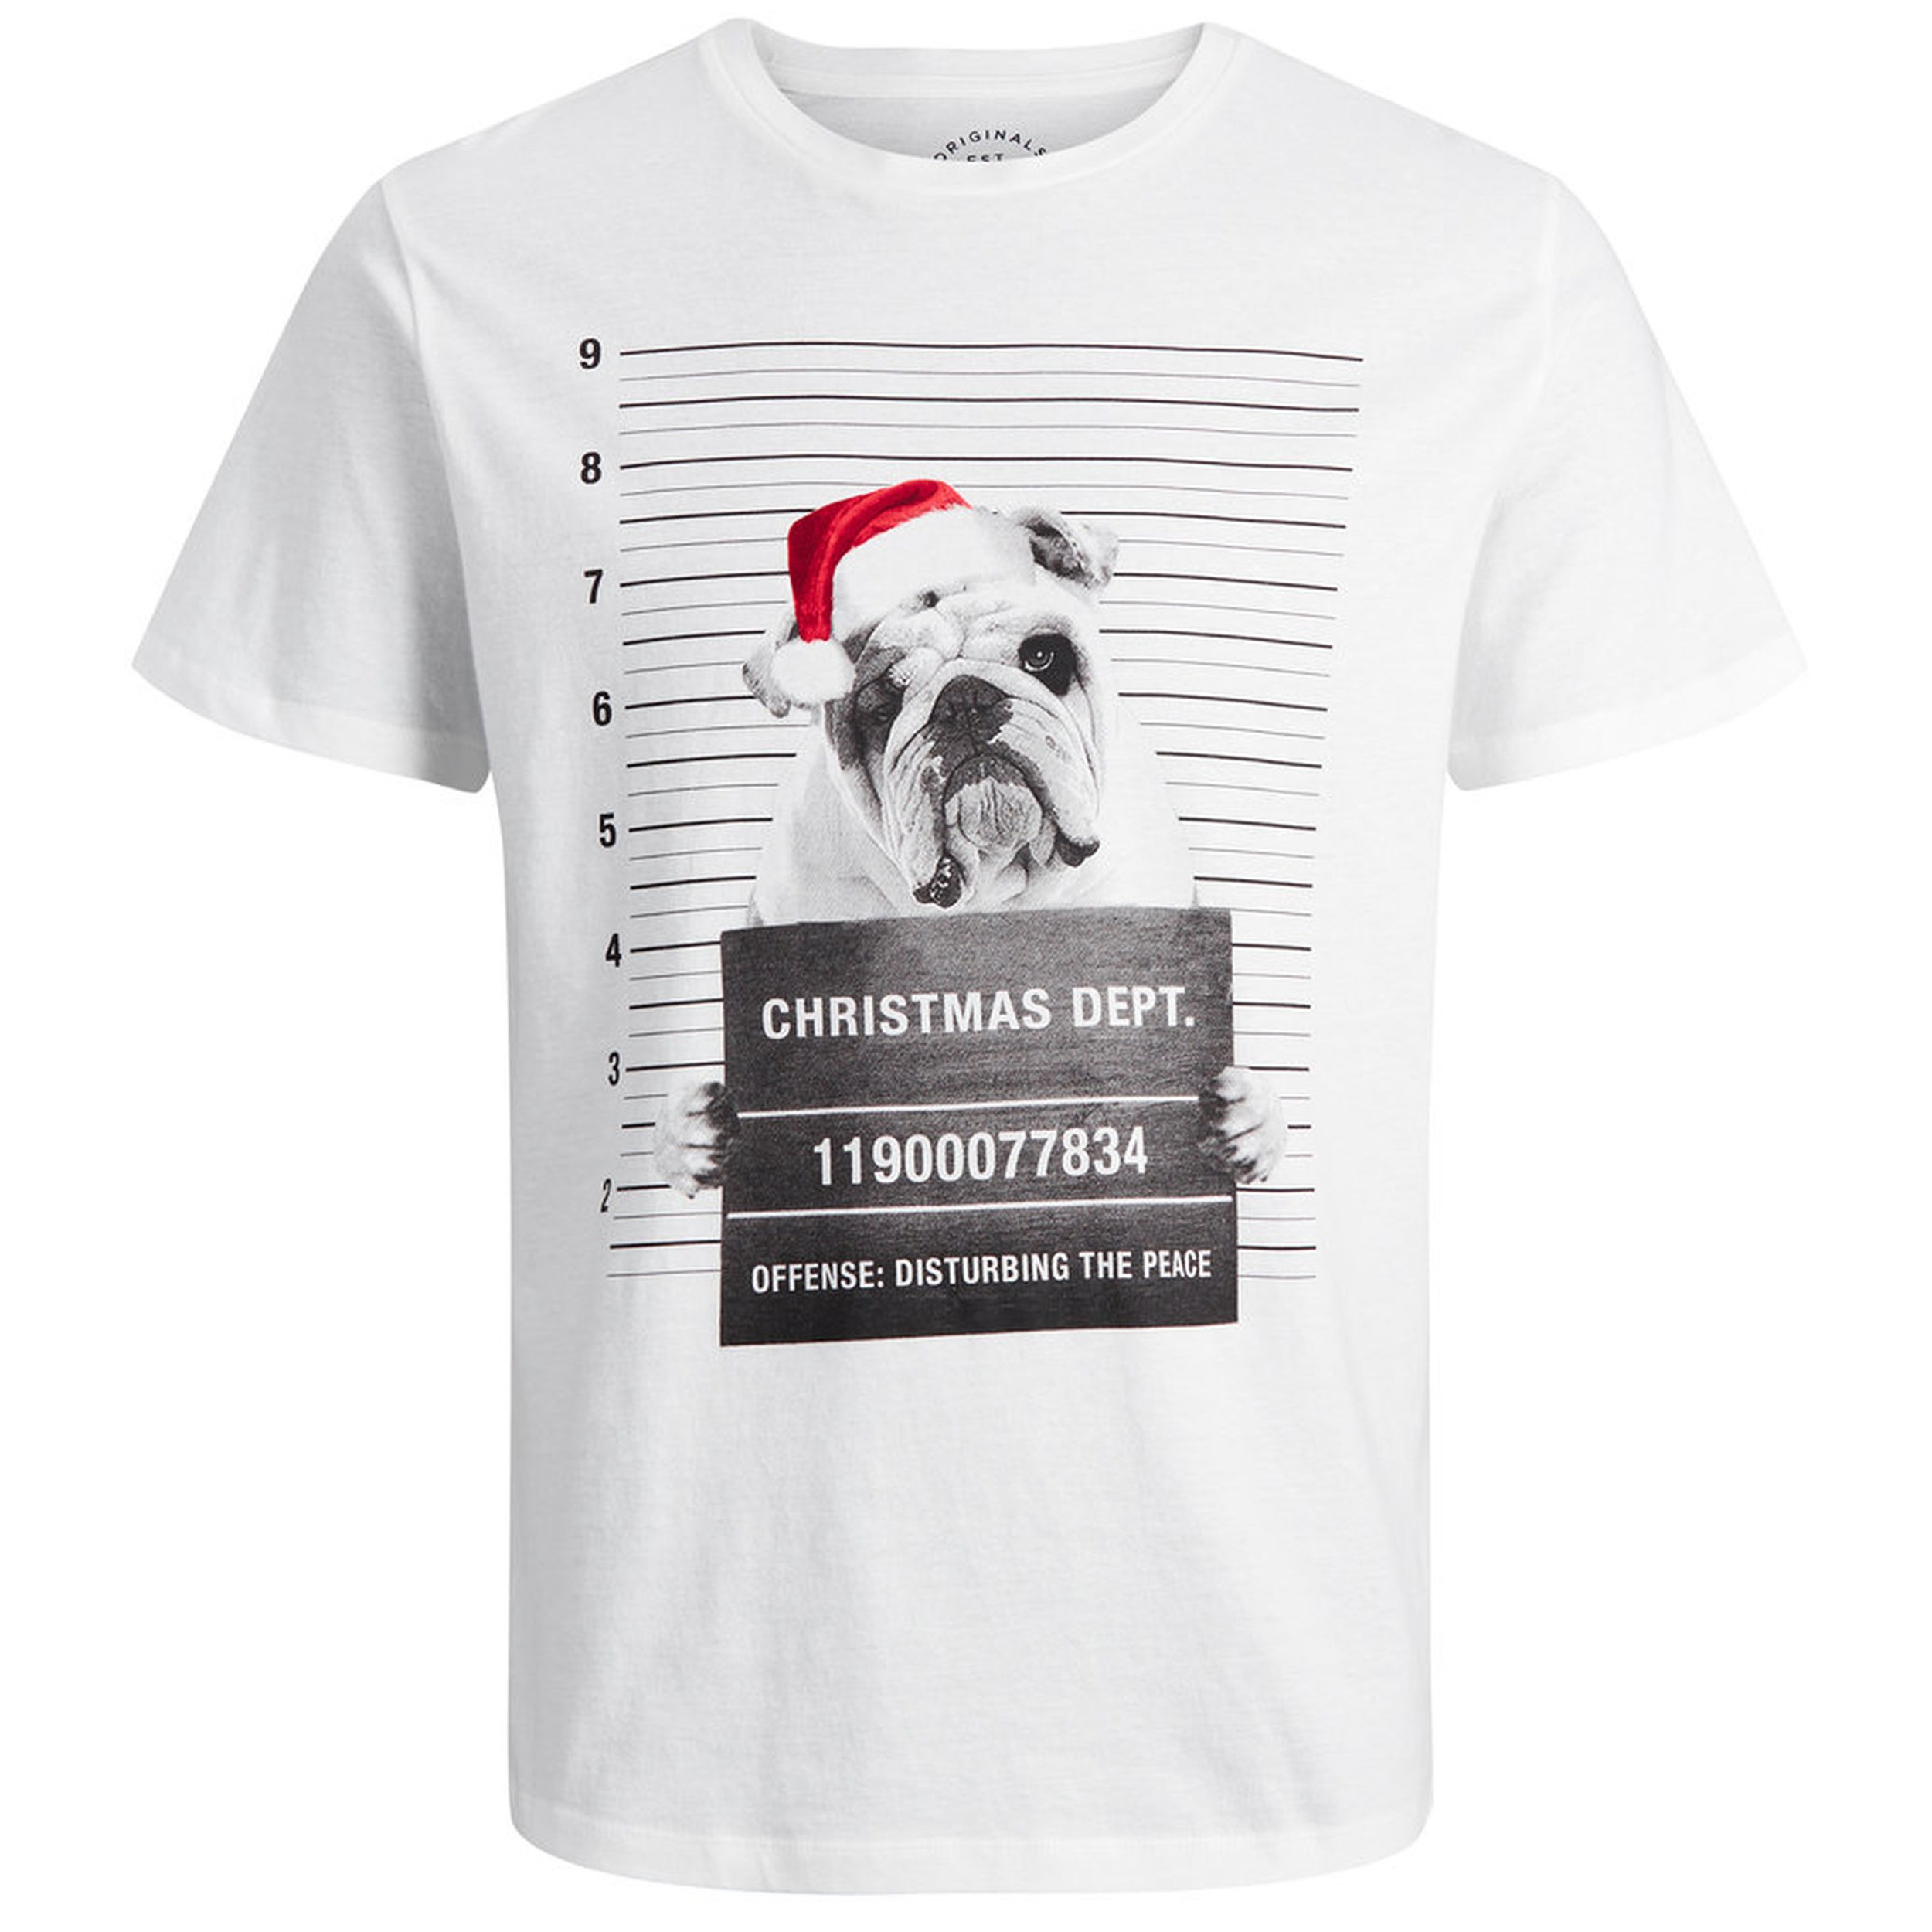 4566a28edaab1 Jack & Jones Crew Neck Jail Photo Dog Christmas Print T-shirt Cloud Dancer  | Jean Scene